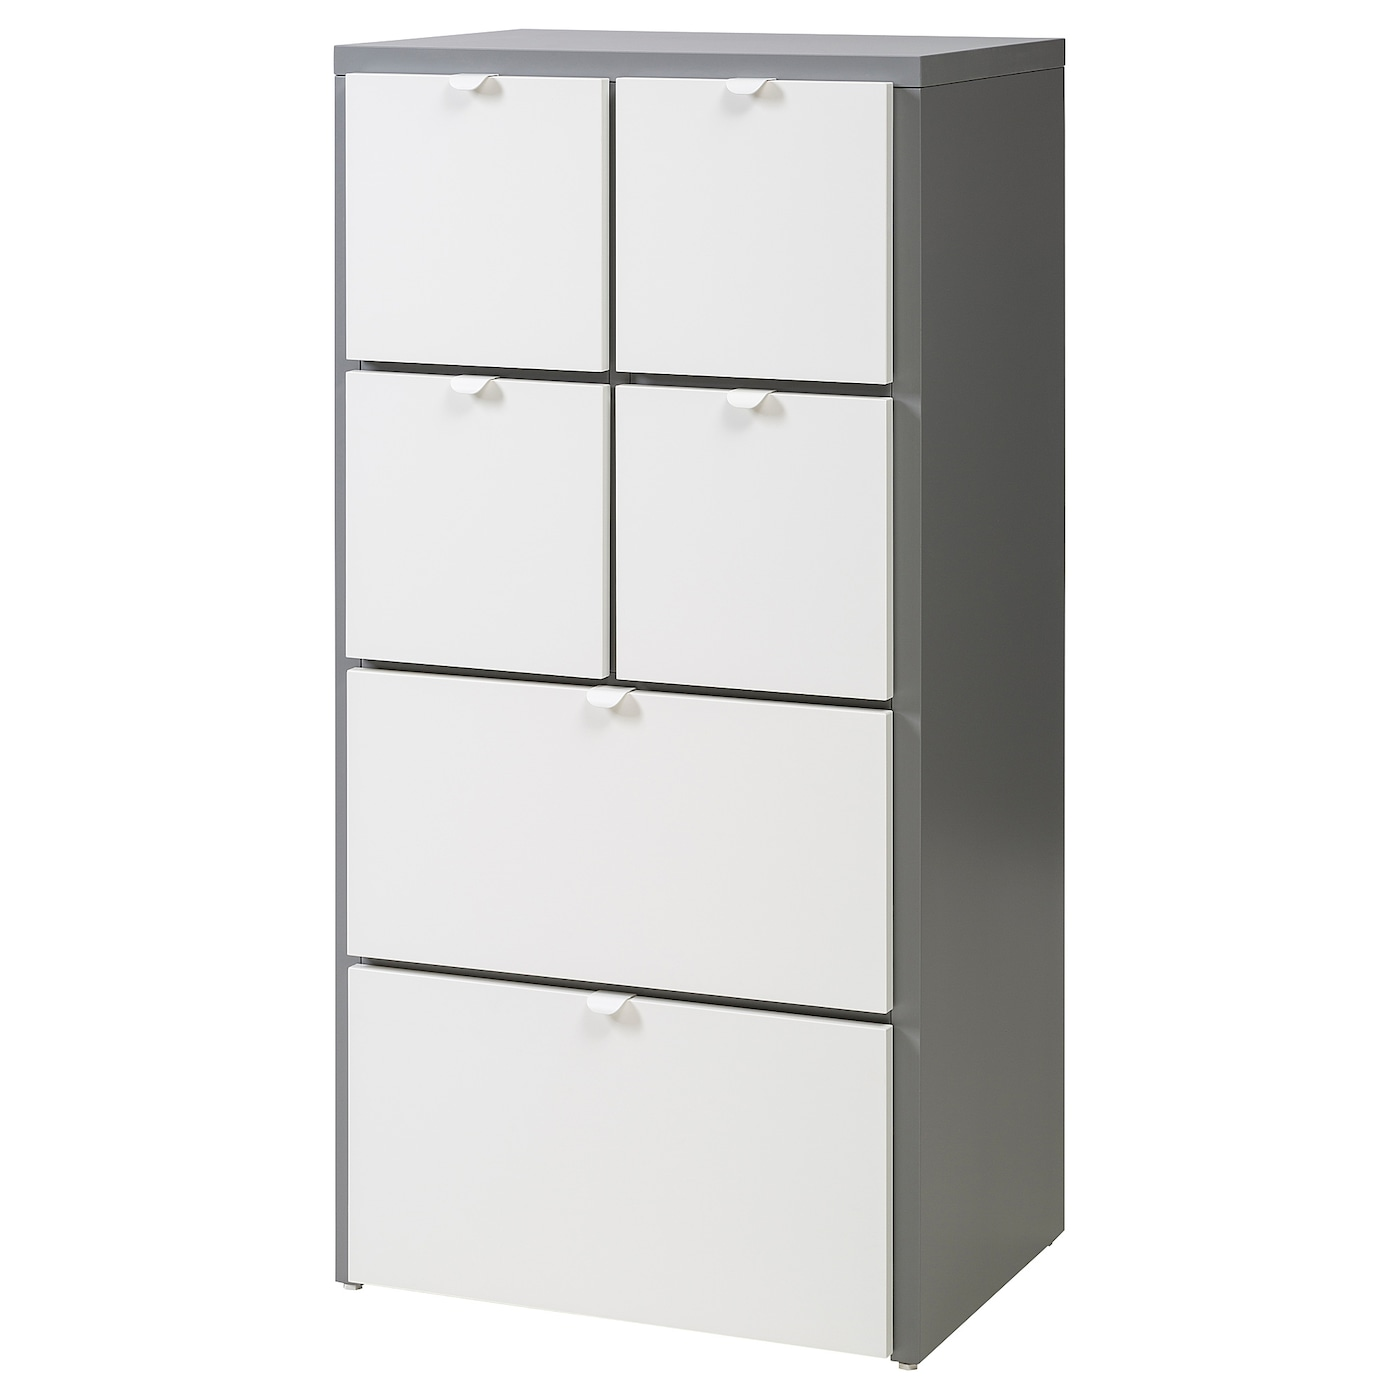 IKEA VISTHUS chest of 6 drawers The bottom drawers have castors and therefore easy to move about.